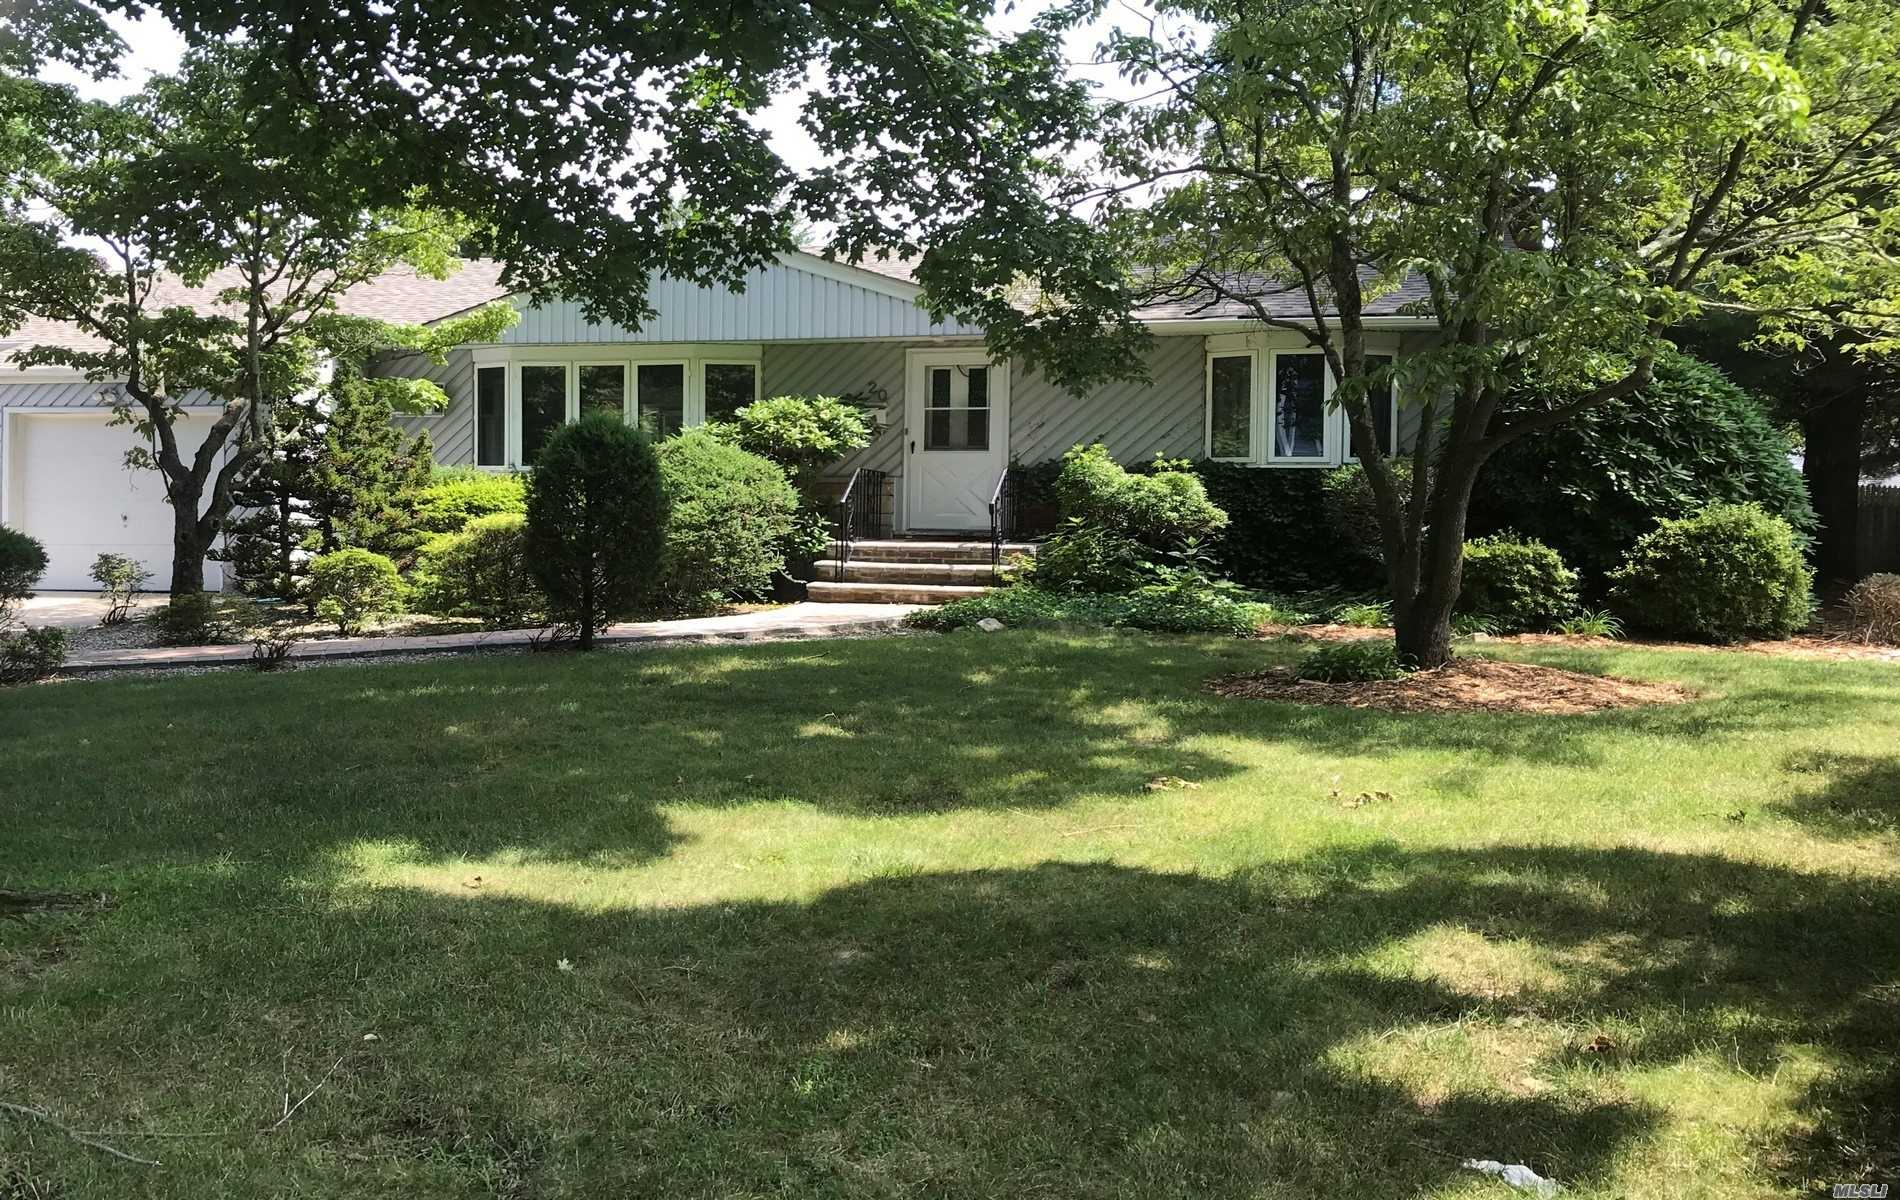 Located In The North Syosset Flower Section, This 3 Bedroom, 2 Bath Expanded Ranch Is Ready For Occupancy. Home Features Main Level With Gleaming Hardwood Floors,  Family Room With Brick Wall Fireplace, Gas Heat, Central Air Conditioning, Large Deck Opens From Sliders Off Kitchen, Full Finished Basement, 2 Cedar Closets, And Attached Garage With Entrance To Home. Large Property Is Fully Fenced. Berryhill Elementary..